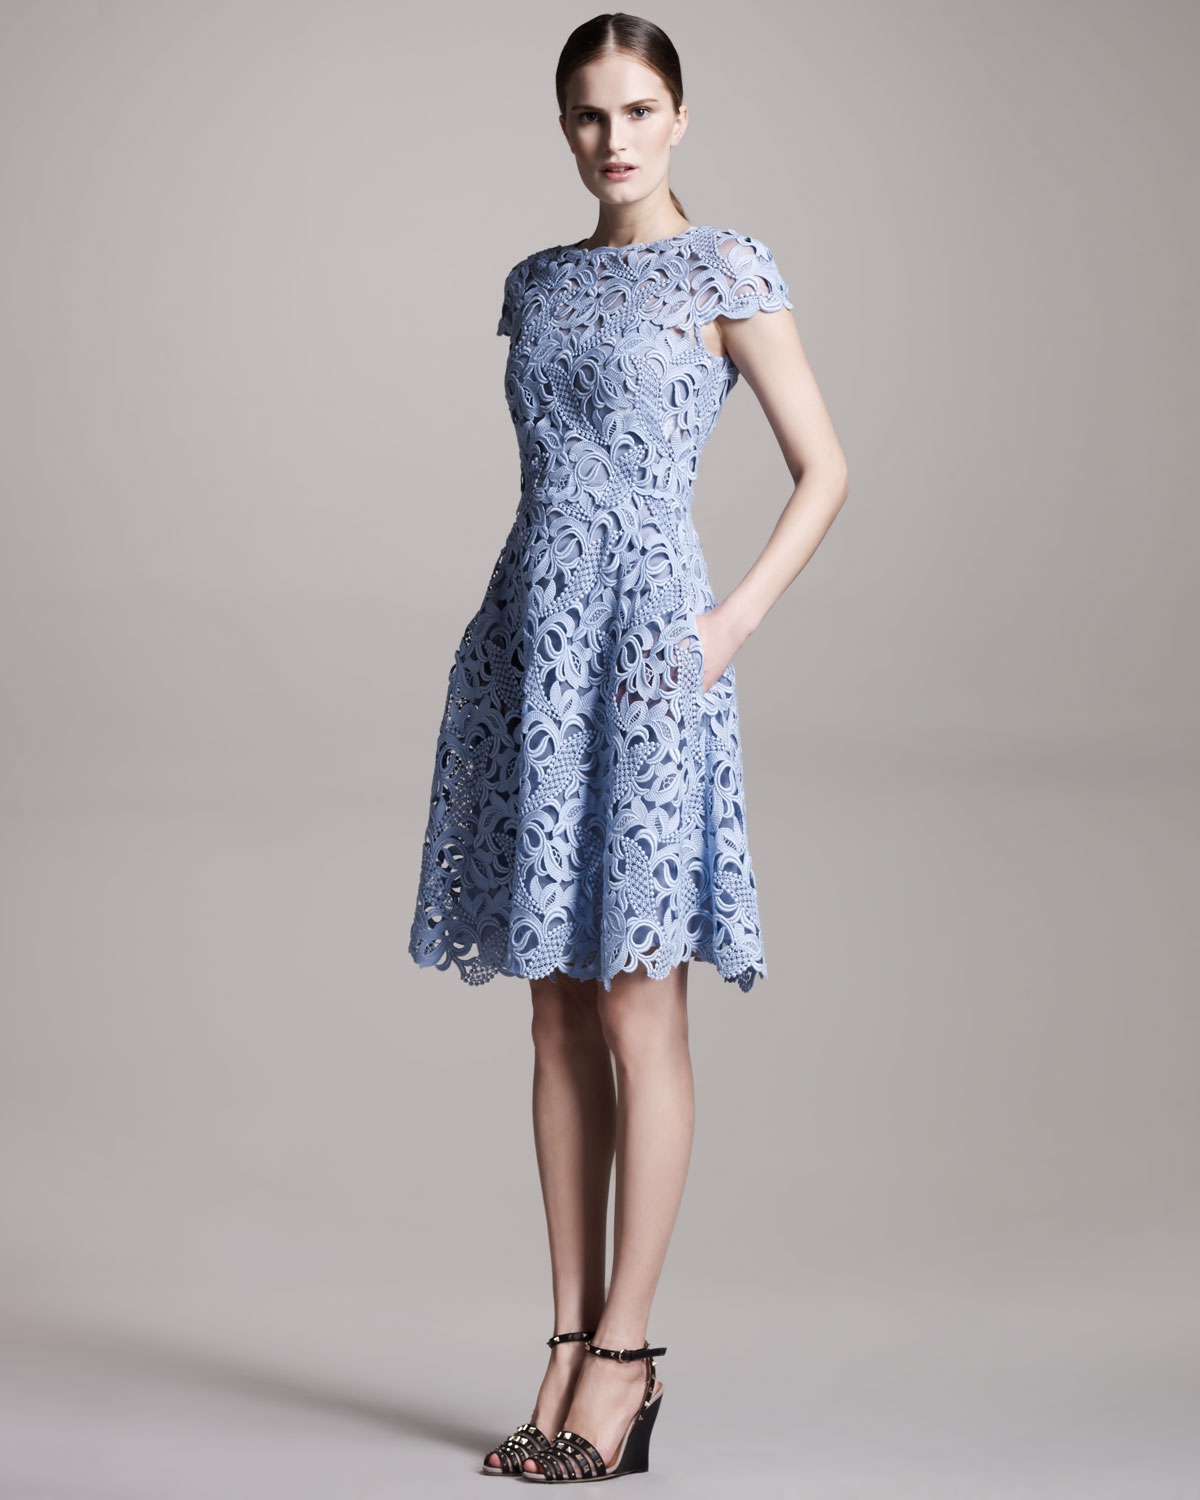 Lyst  Valentino Capsleeve Lace Dress in Blue